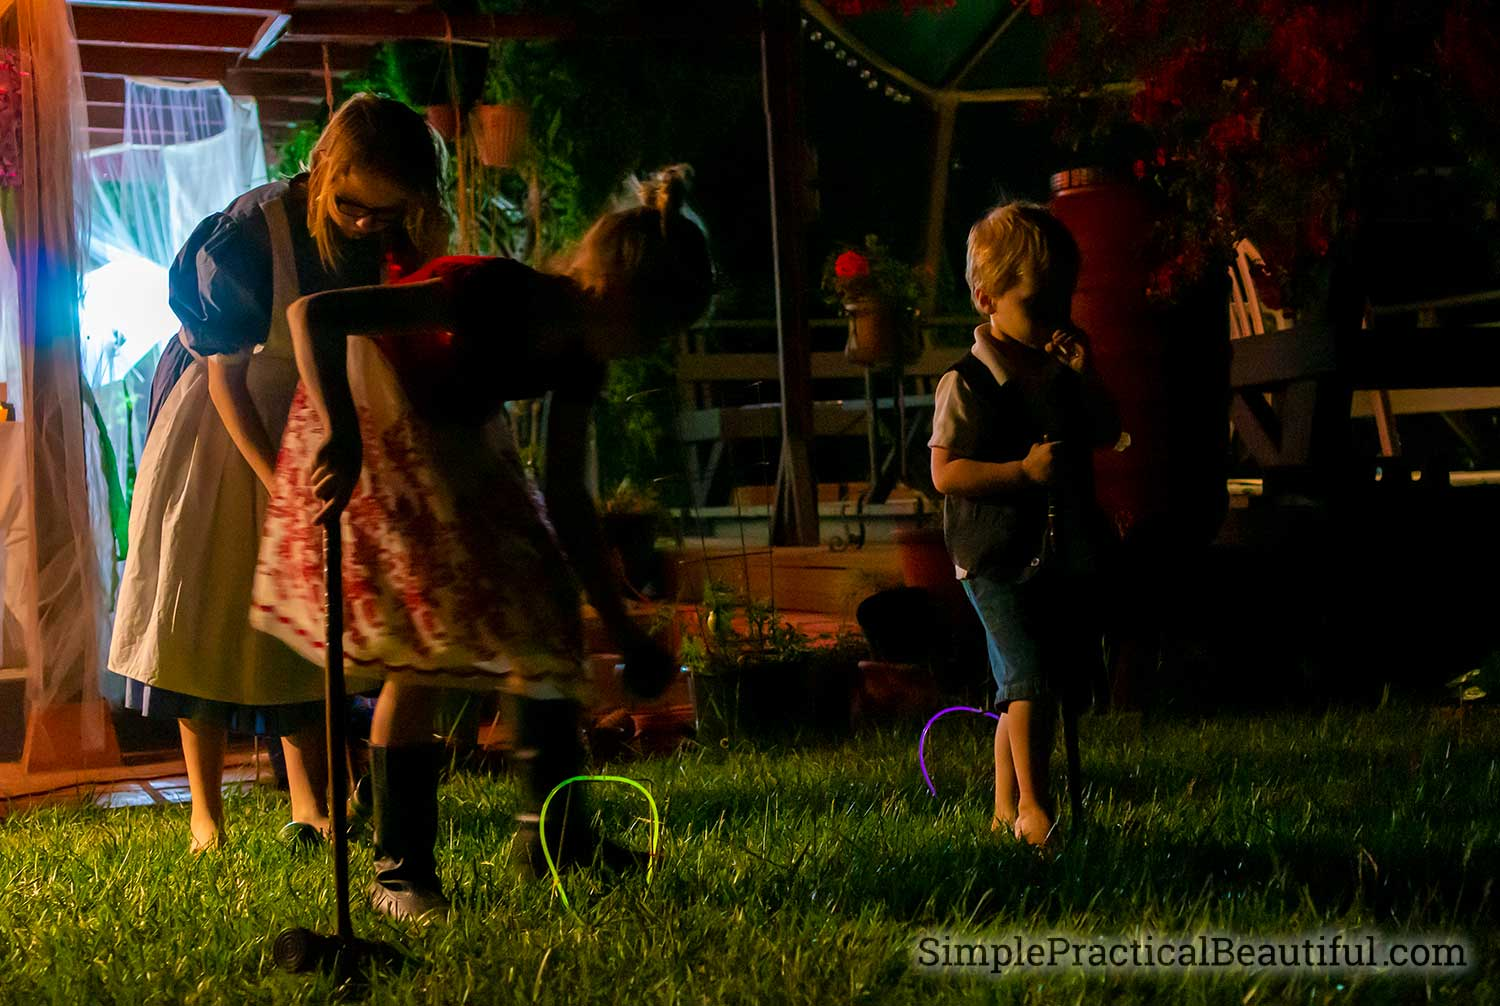 Glow in the dark croquet game at a Alice in Wonderland party